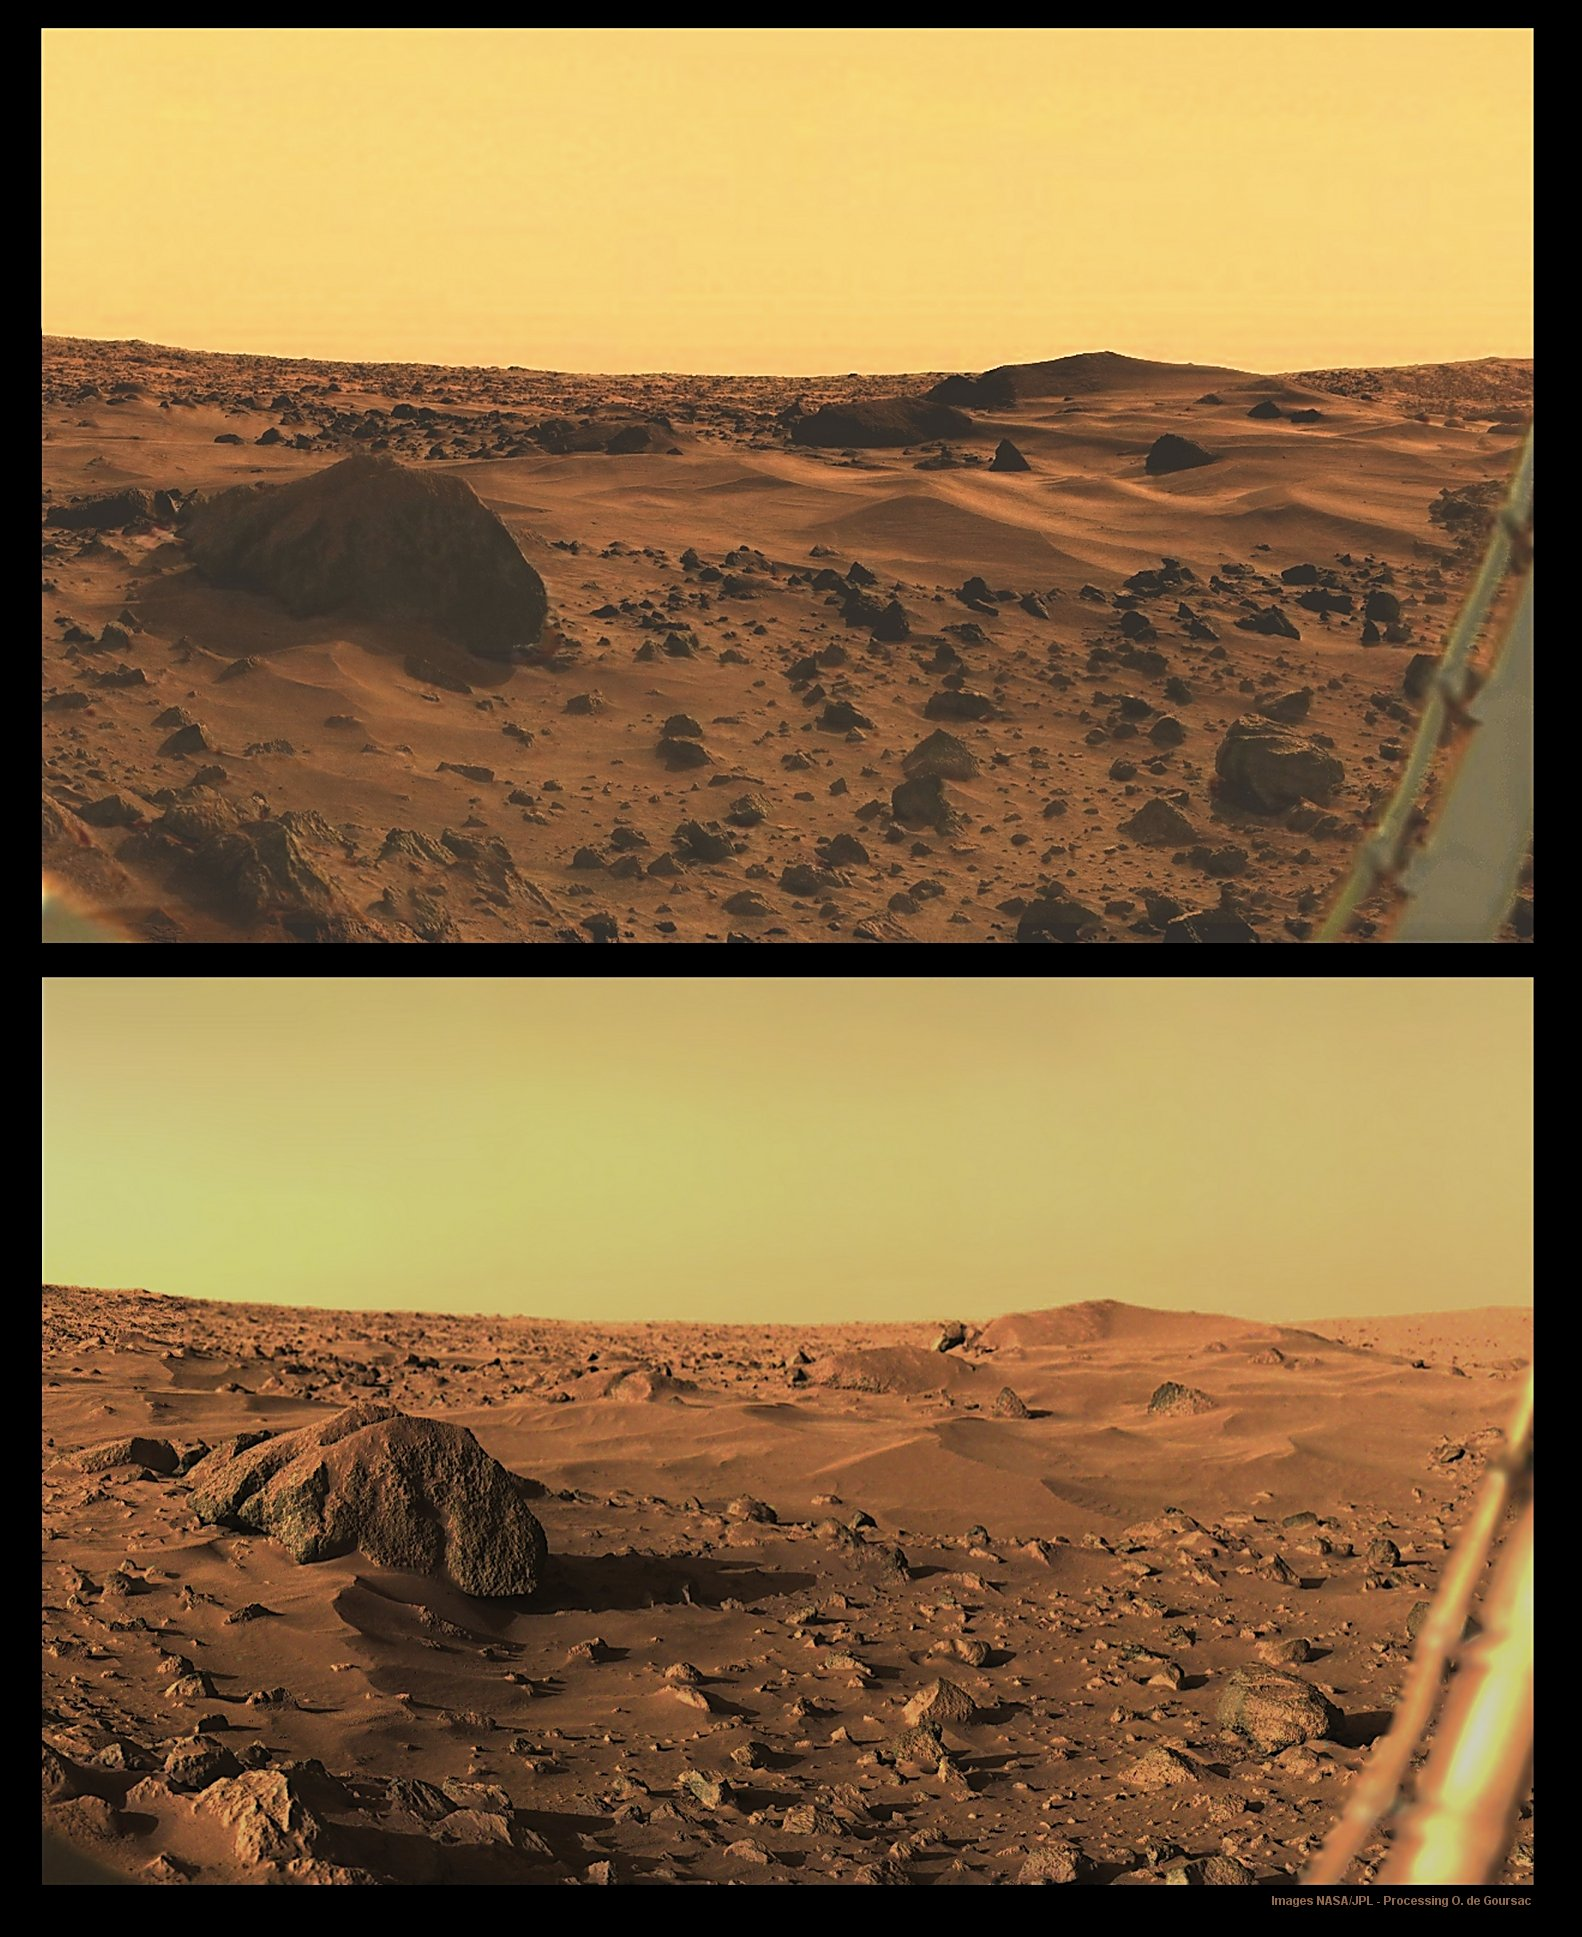 http://www.unmannedspaceflight.com/index.php?act=attach&type=post&id=23664